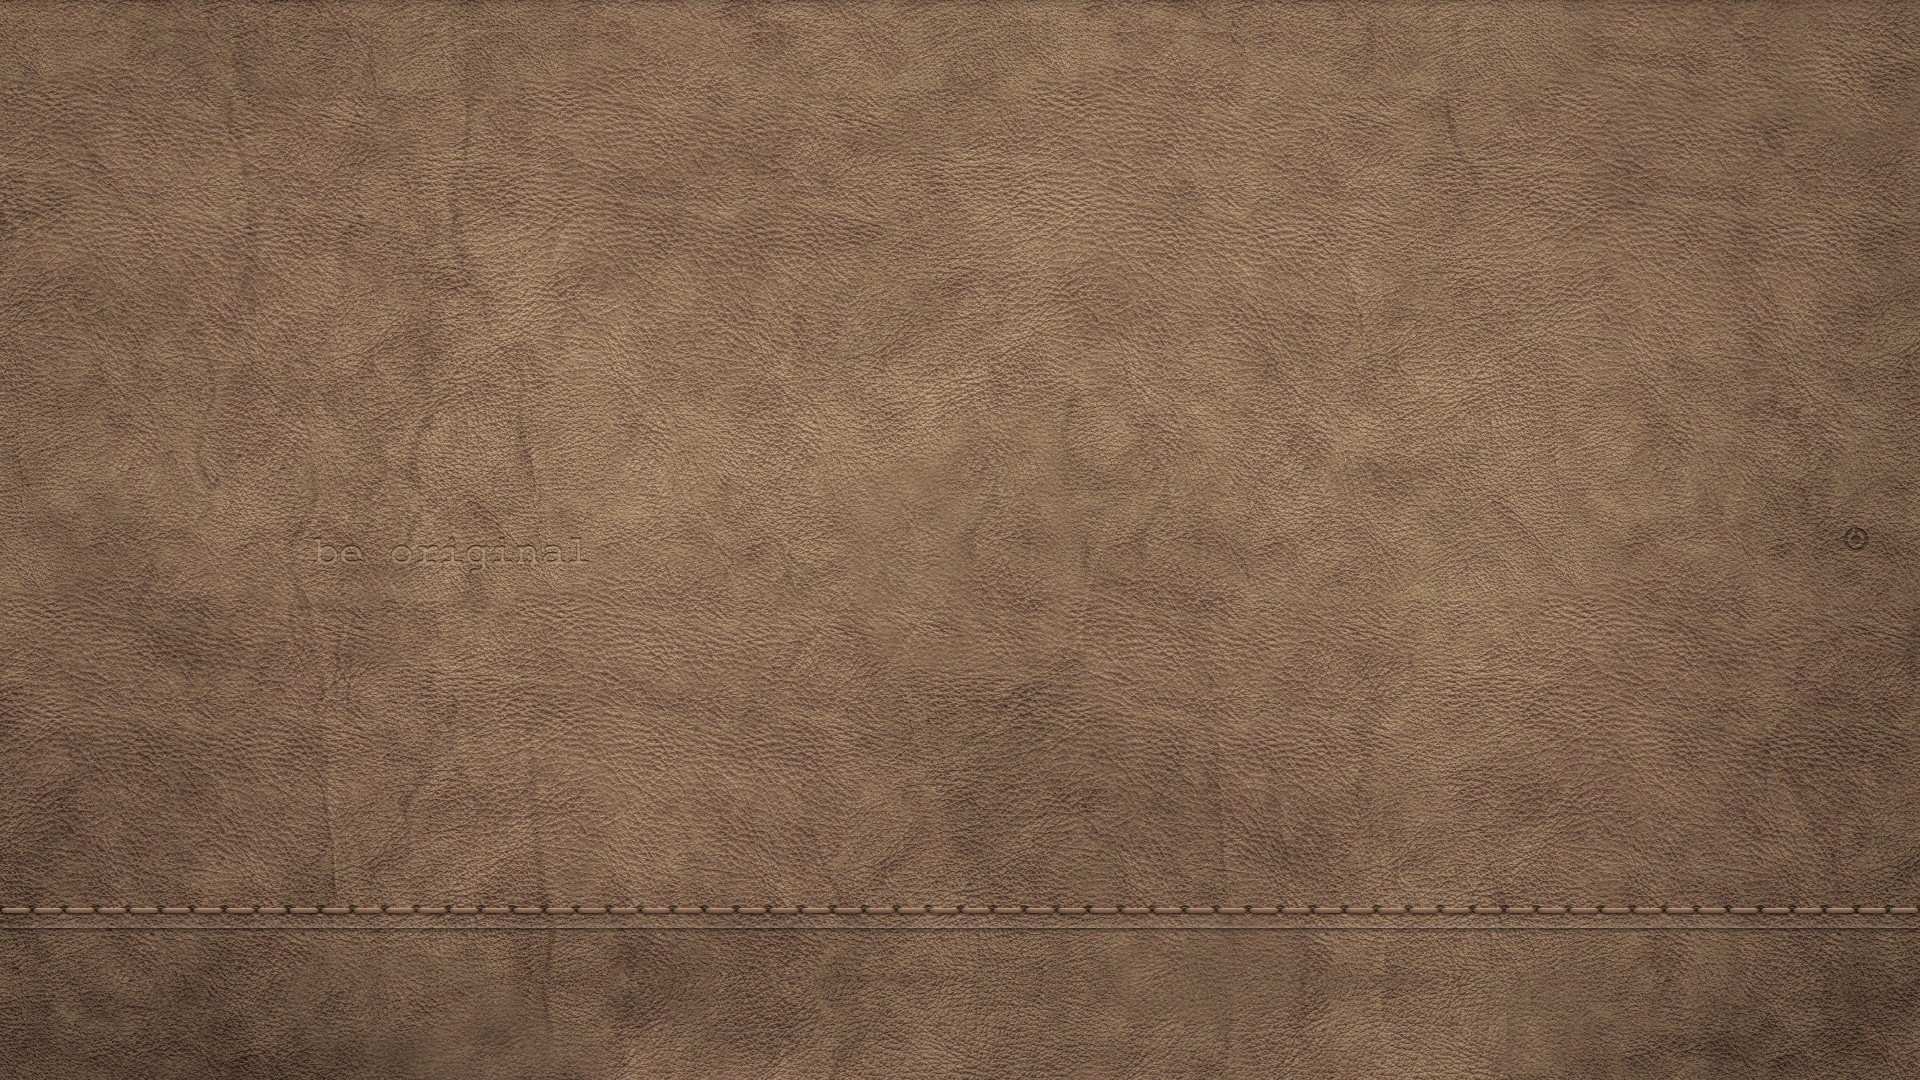 Leather textures wallpaper | 1920x1080 | 248954 | WallpaperUP: www.wallpaperup.com/248954/leather_textures.html